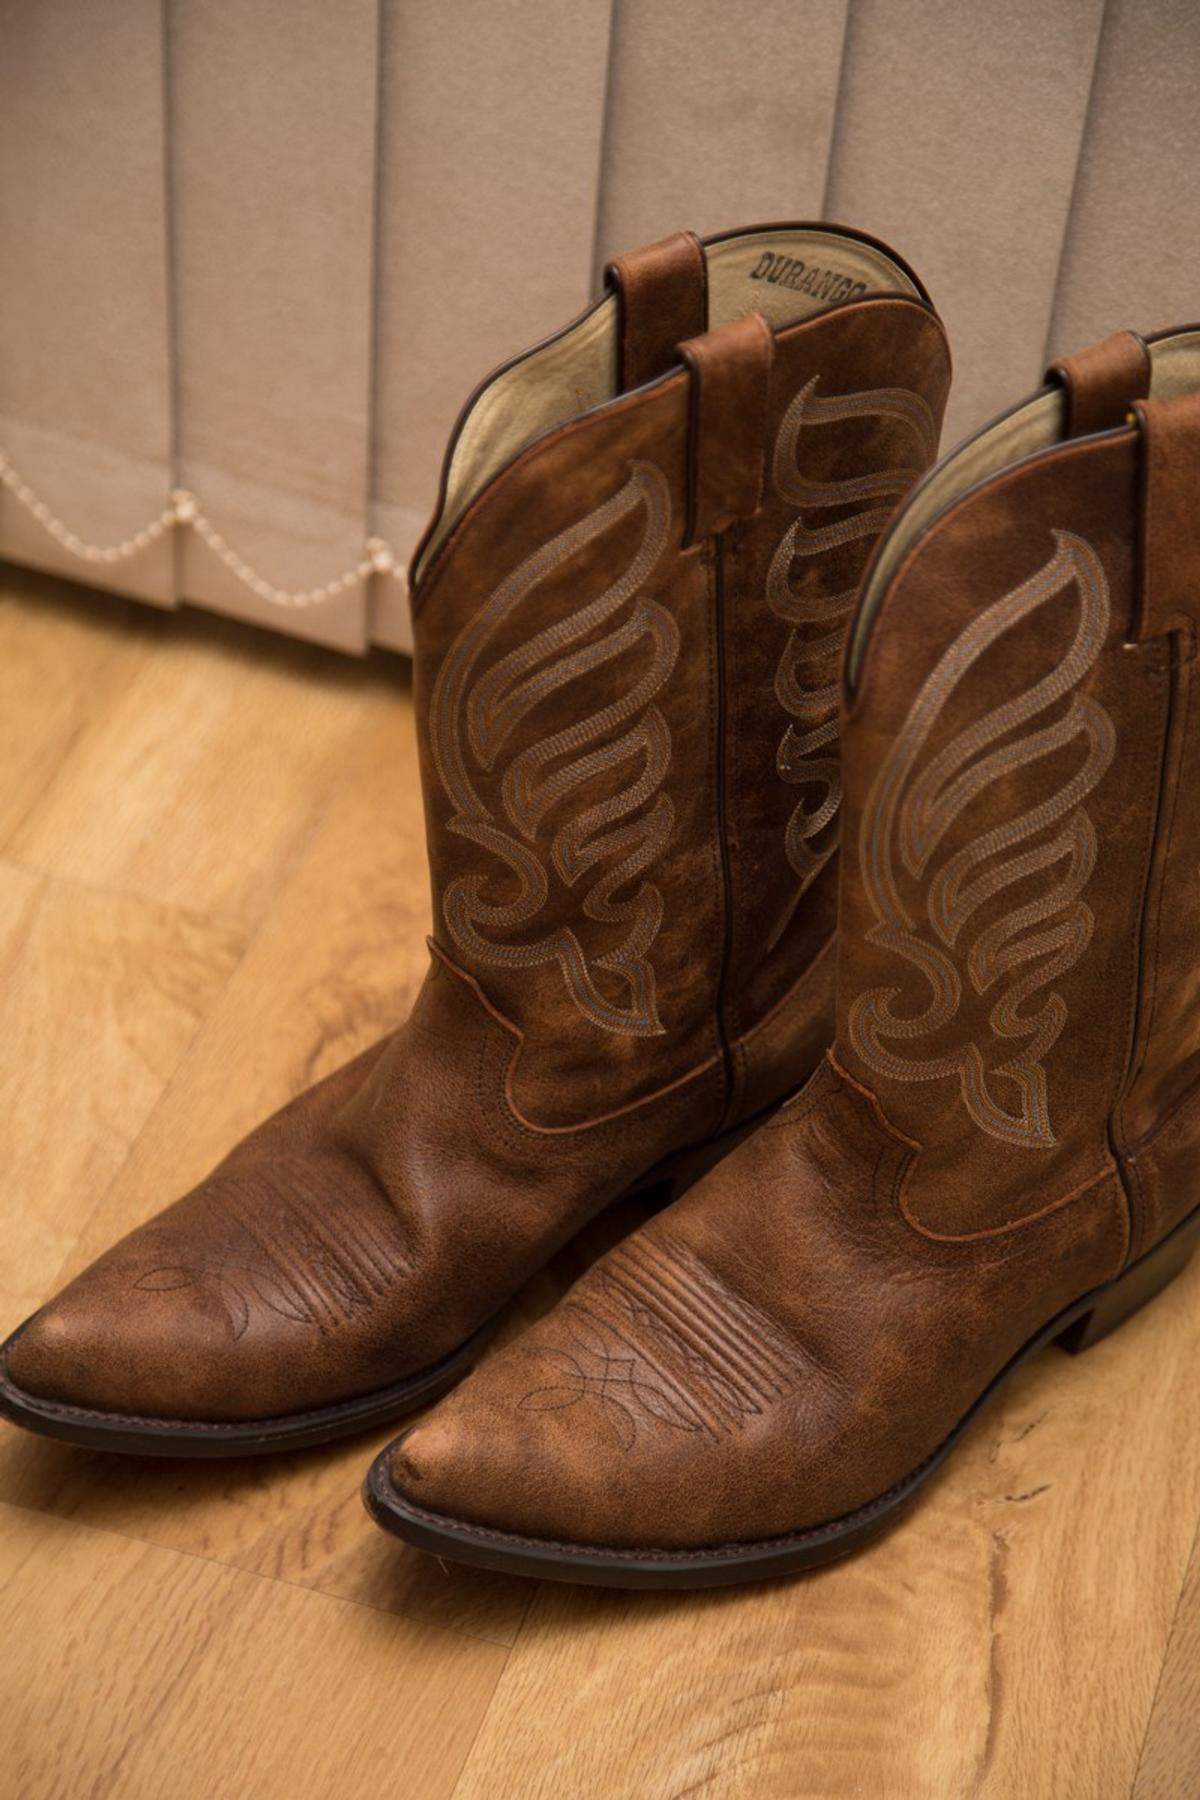 Men's Durango Cowboy Boots 1211.546 in SE18 Greenwich for